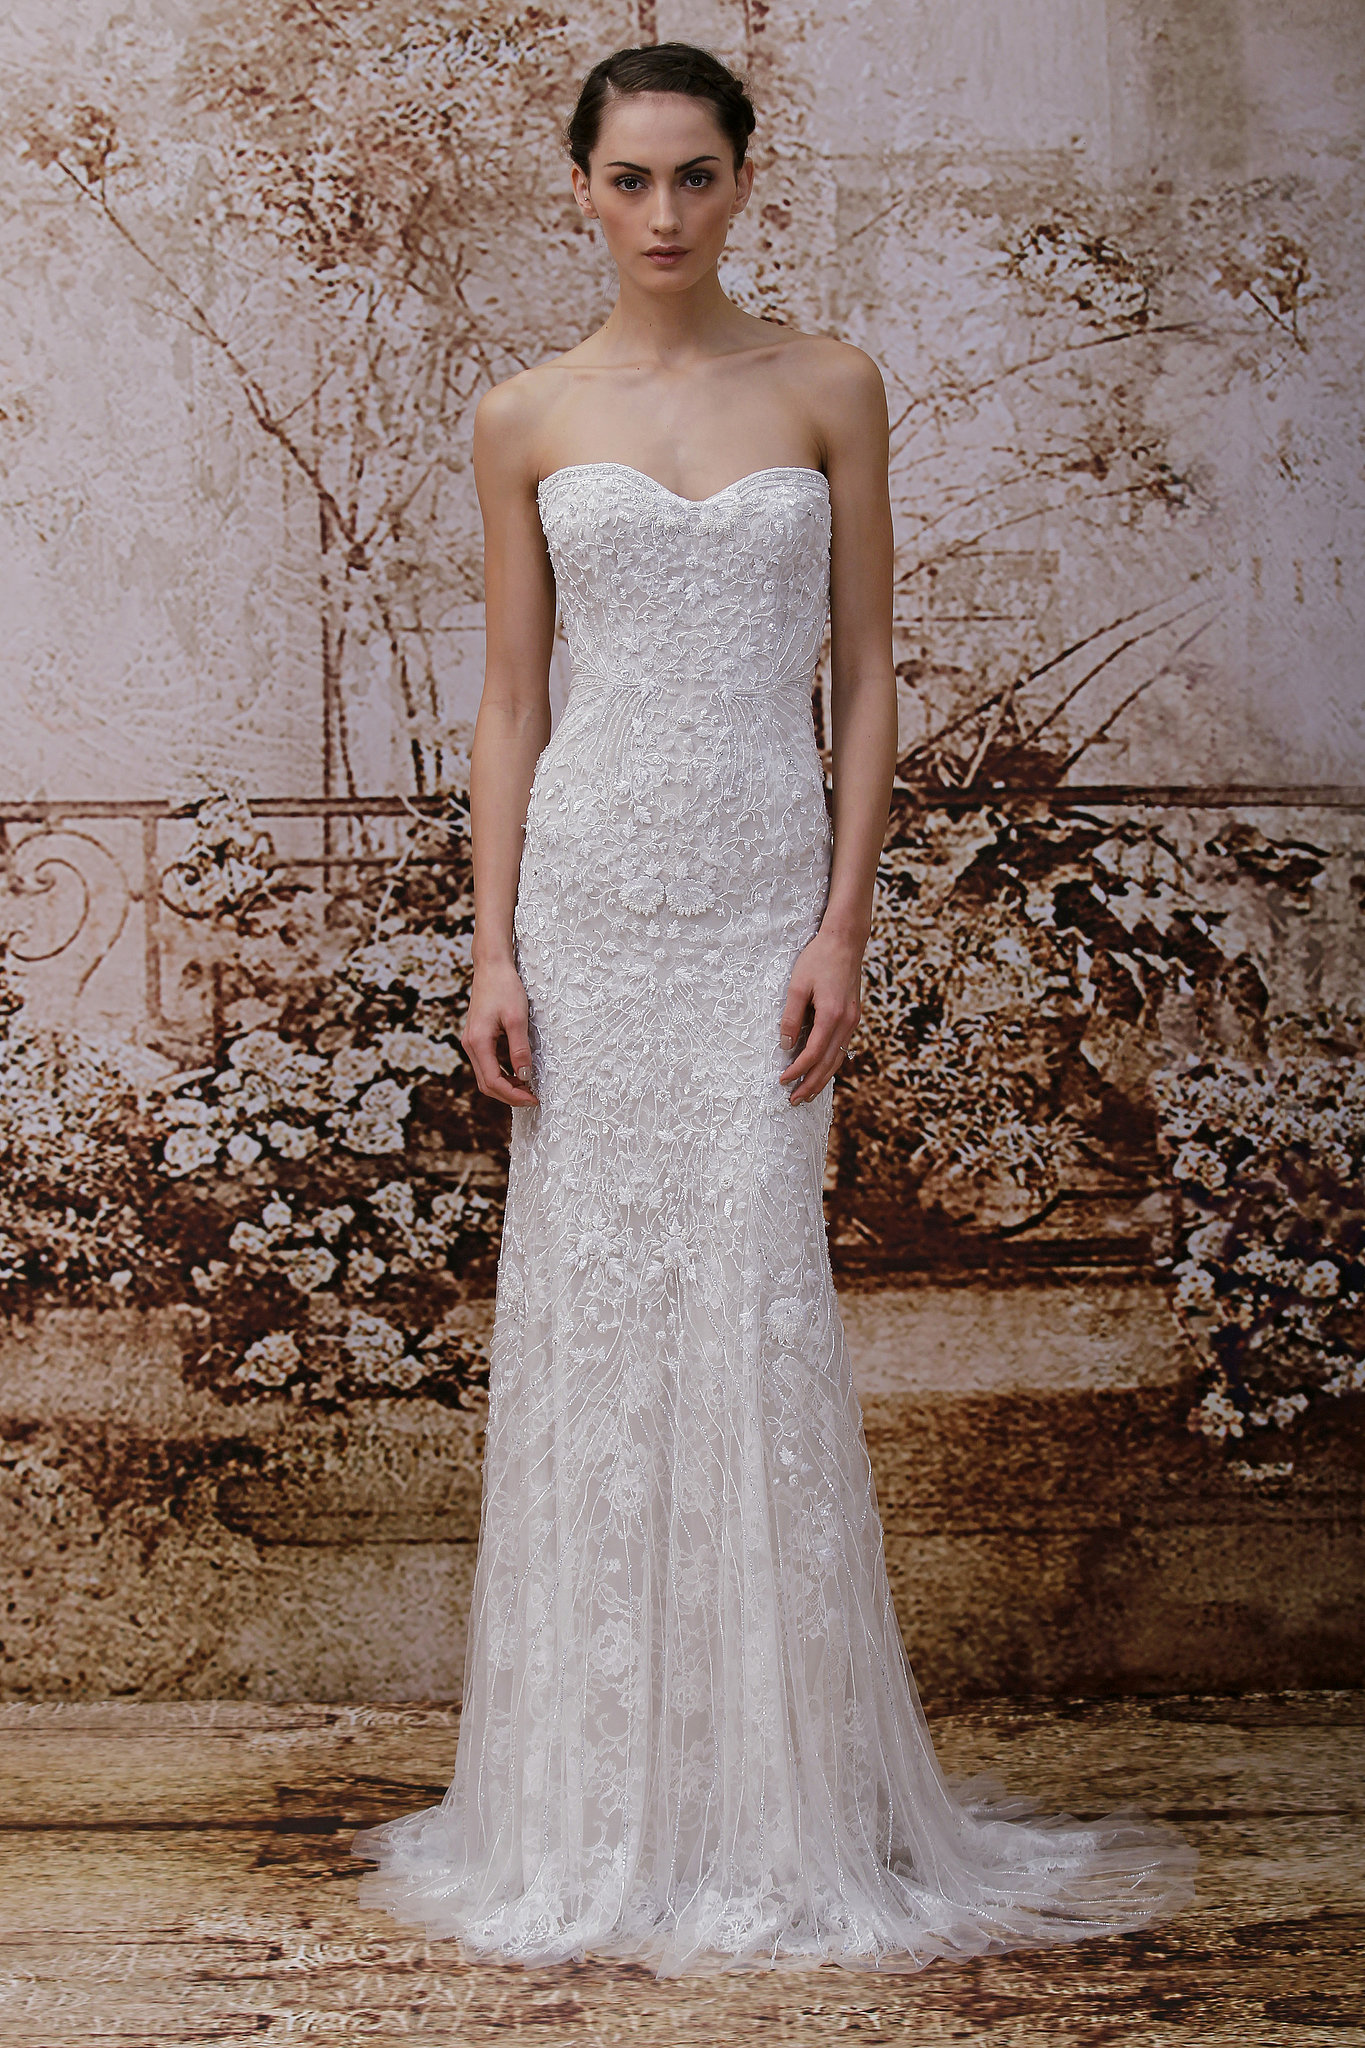 Monique Lhuillier Fall 2014 Wedding Dresses Monique Lhuillier Bridal Fall